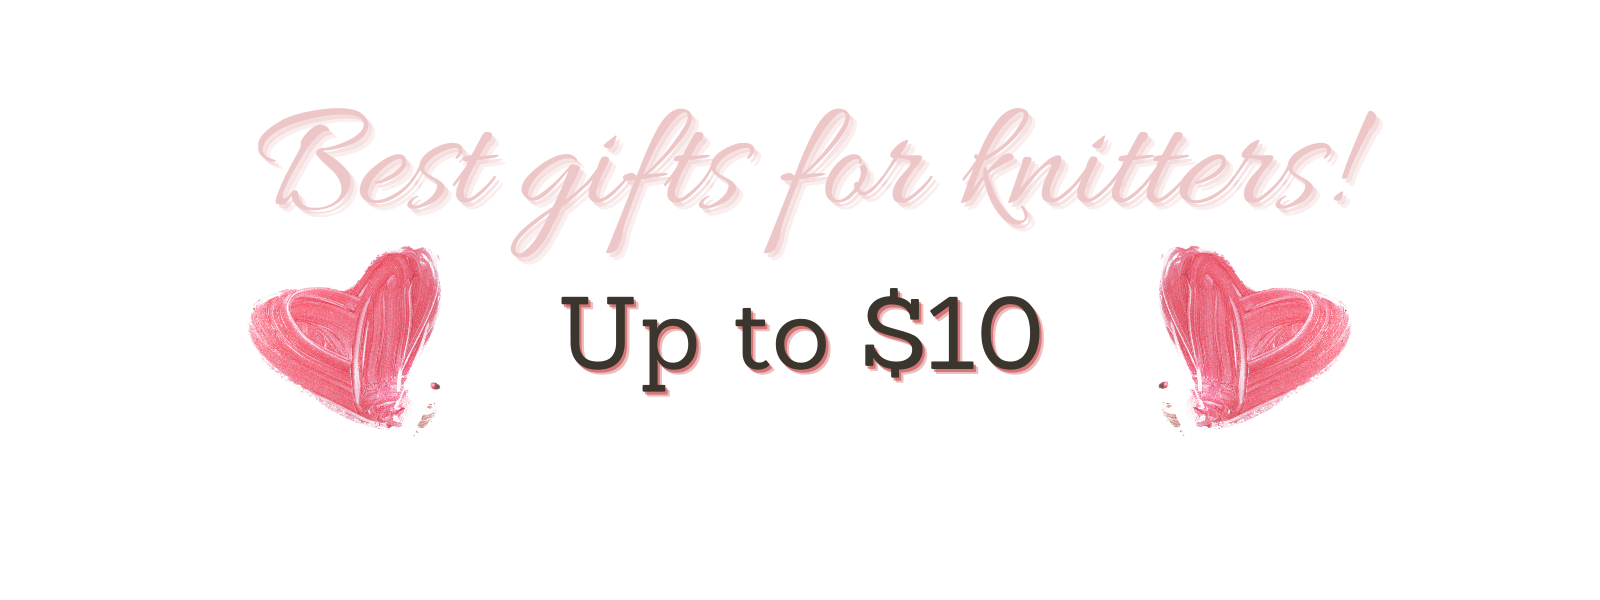 Gifts for knitters up to $10